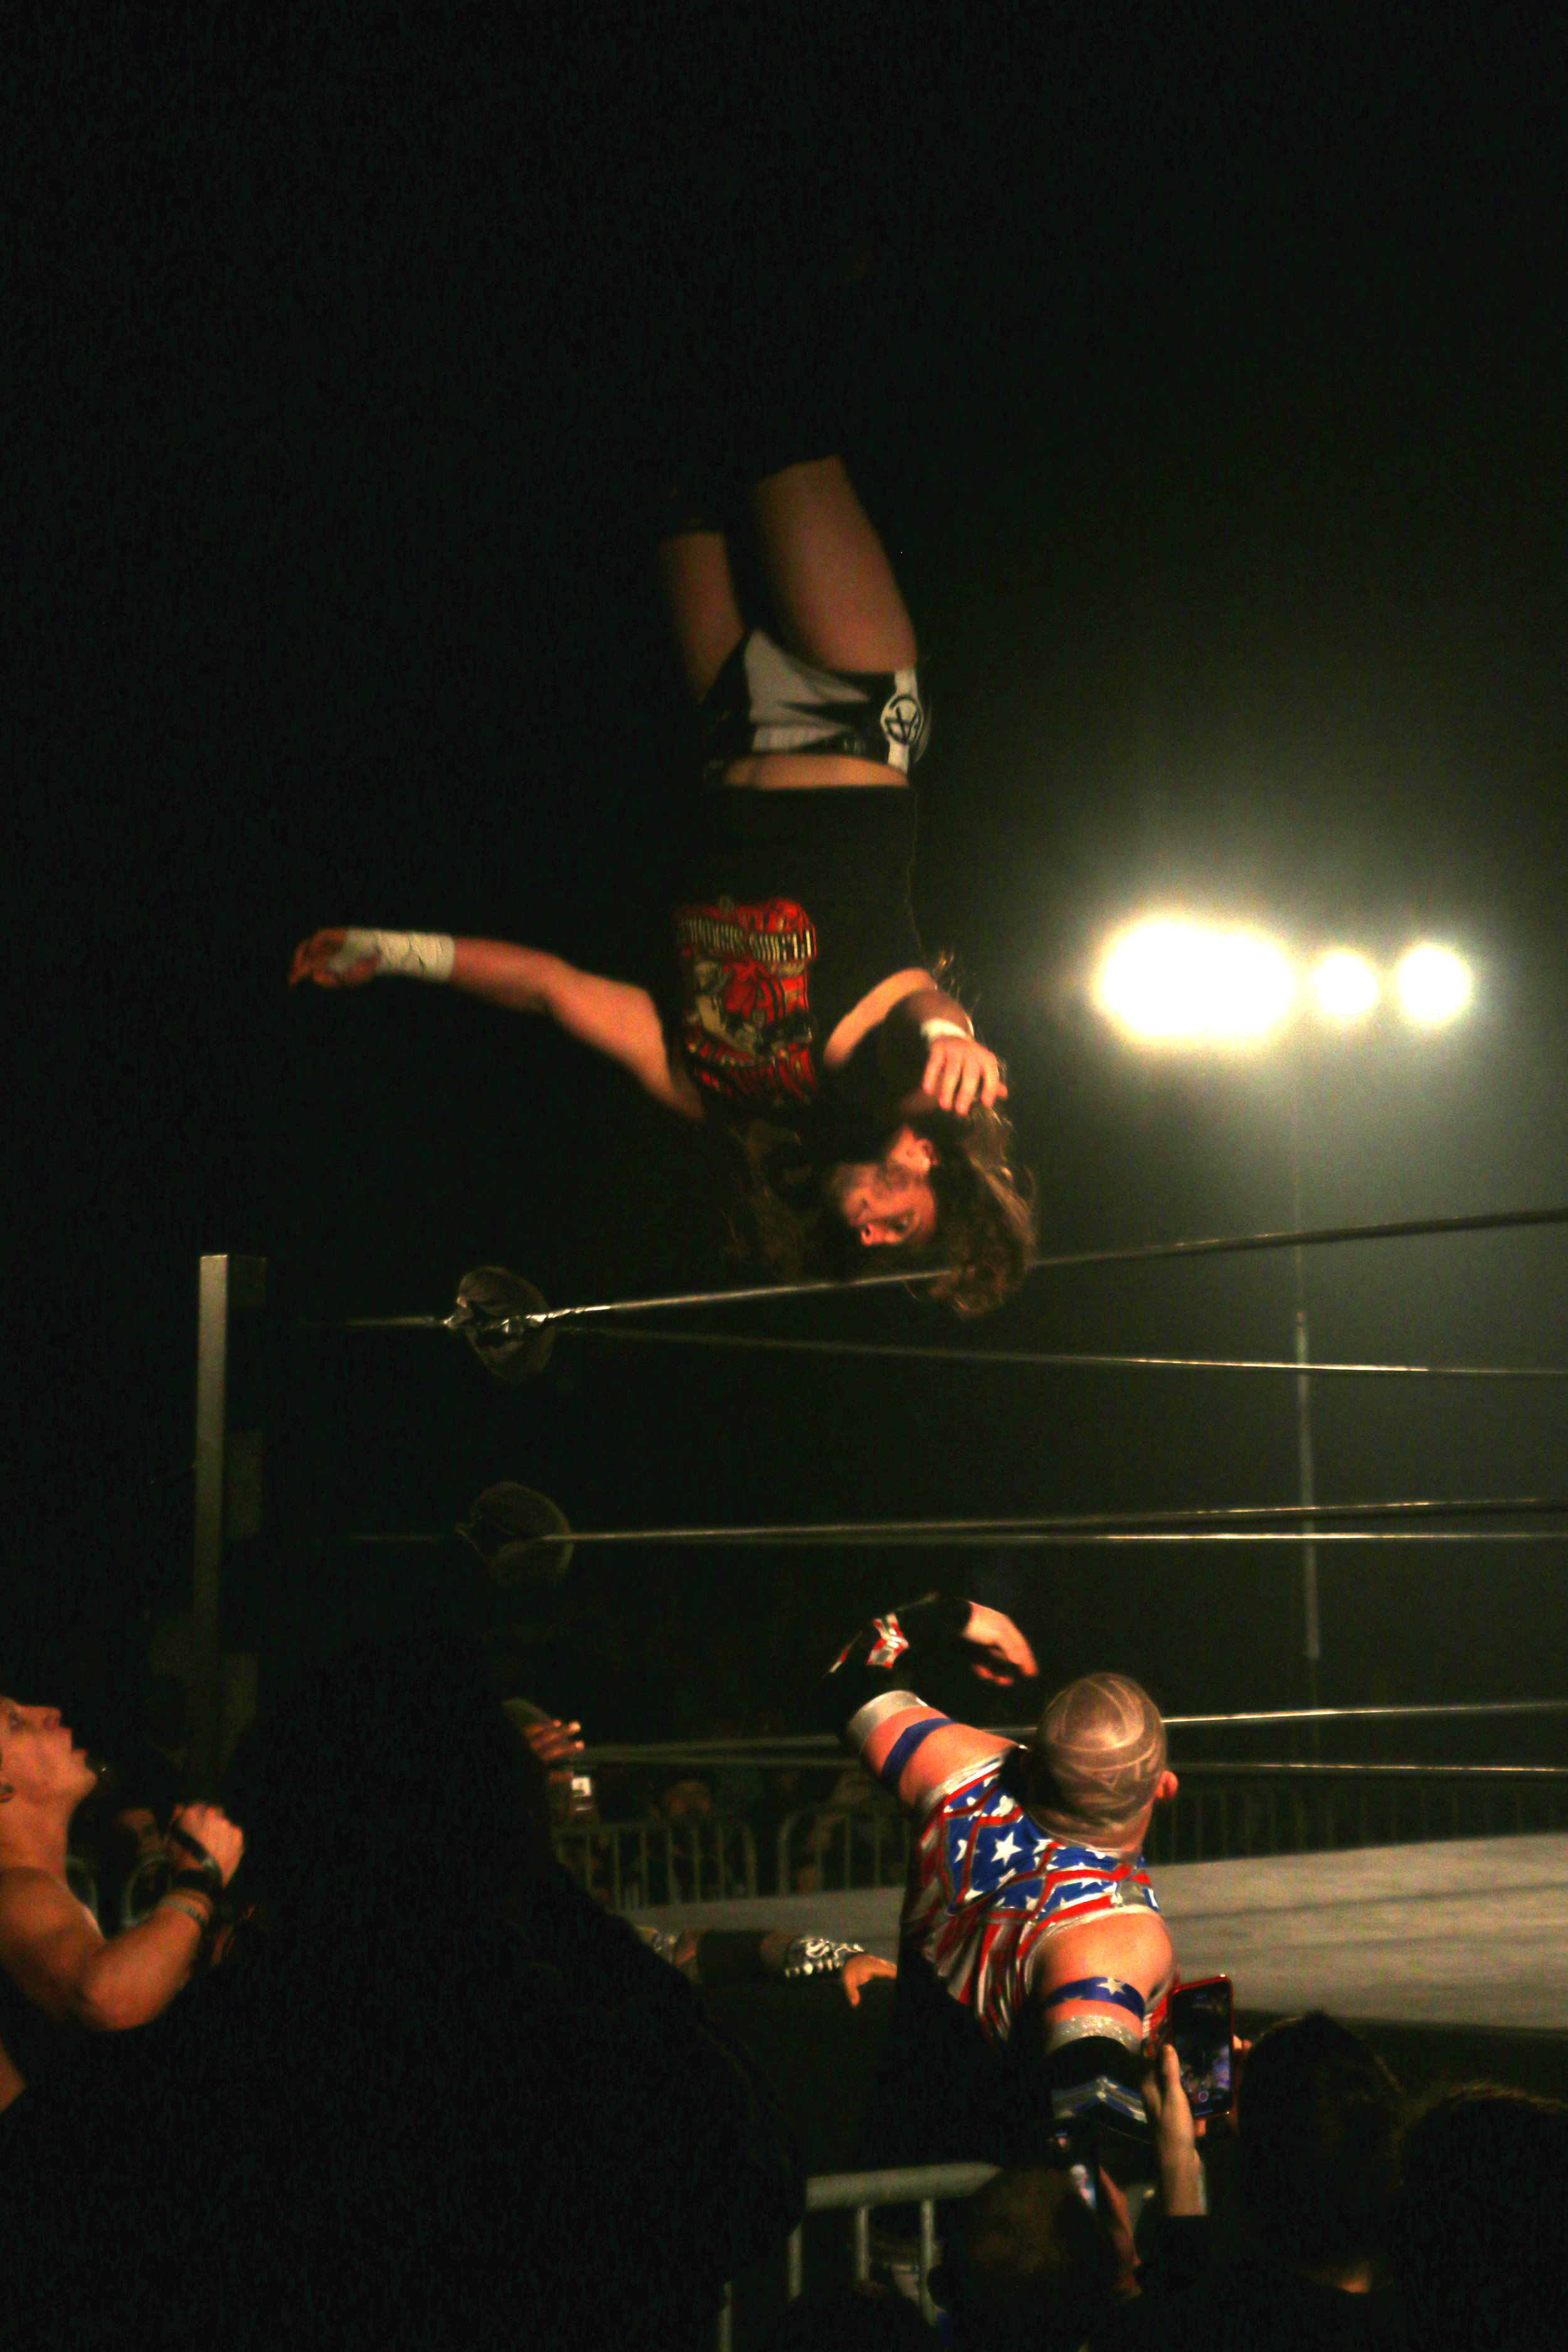 Andrew Everett moonsaults to the floor onto his opponents during the six-man scramble match.